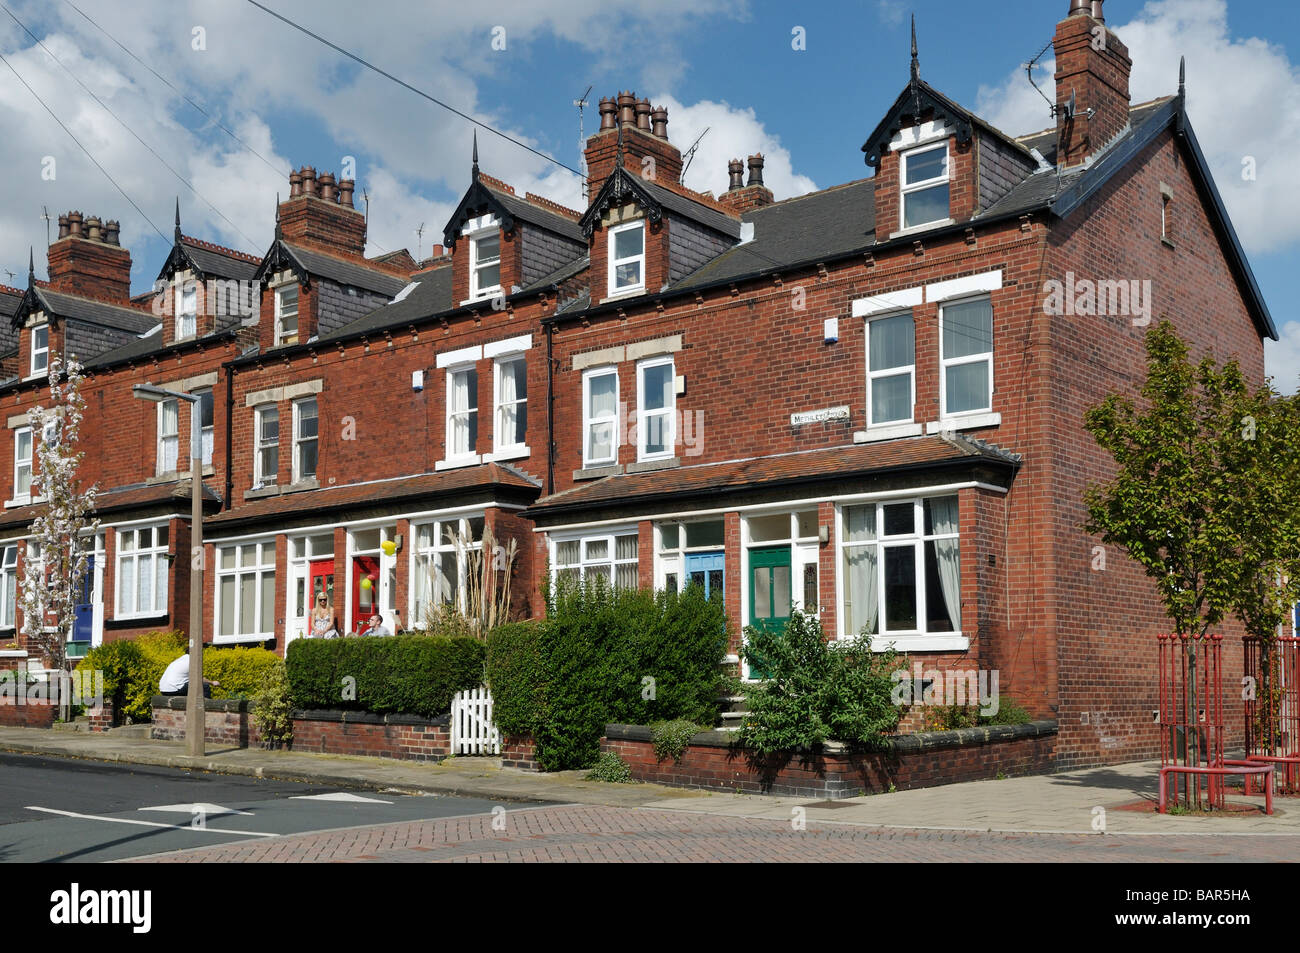 Victorian Red Brick Back To Working Class Terrace Houses With Bay And Dormer Windows Chapeltown Area Leeds West Yorkshire